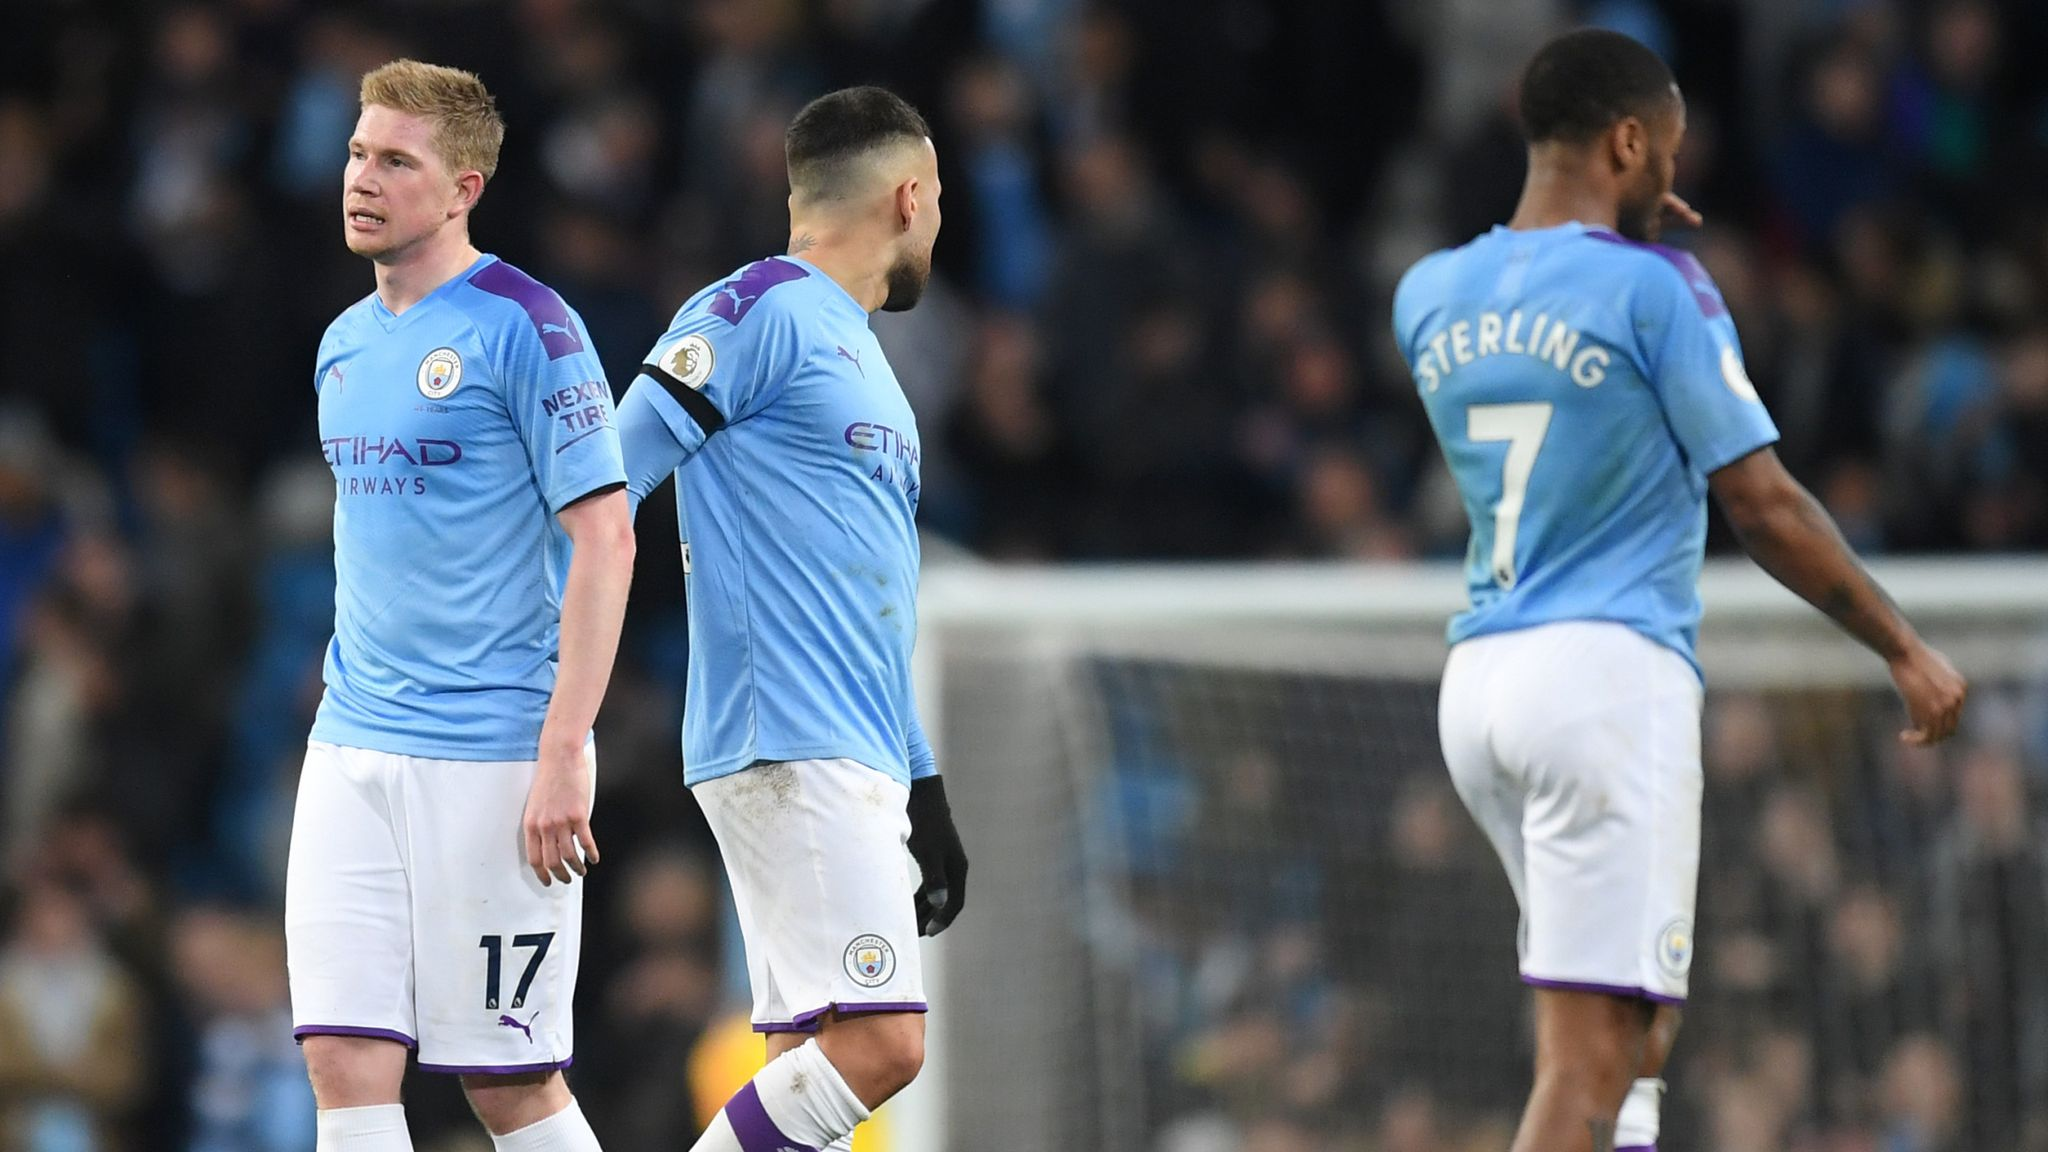 Pep Guardiola says Manchester City struggling to match elite clubs at current time